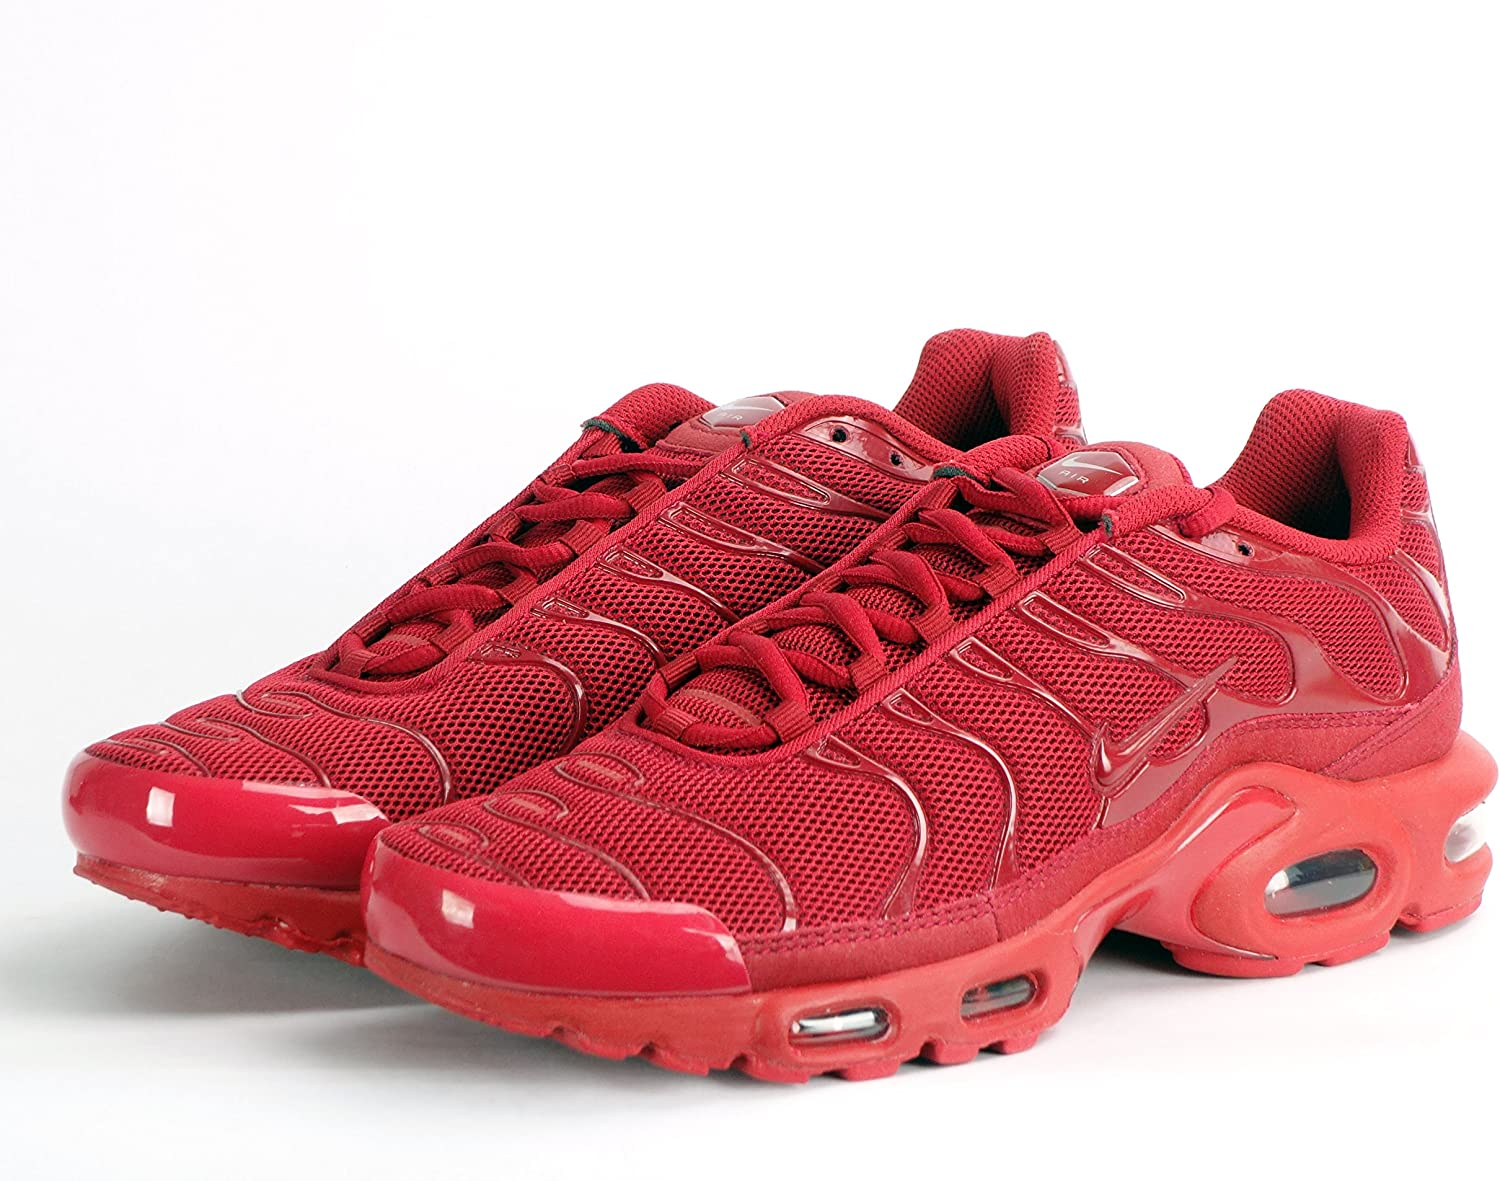 Nike Air Max Plus TXT TN Homme Baskets - Gym Rouge/Rouge, Homme ...